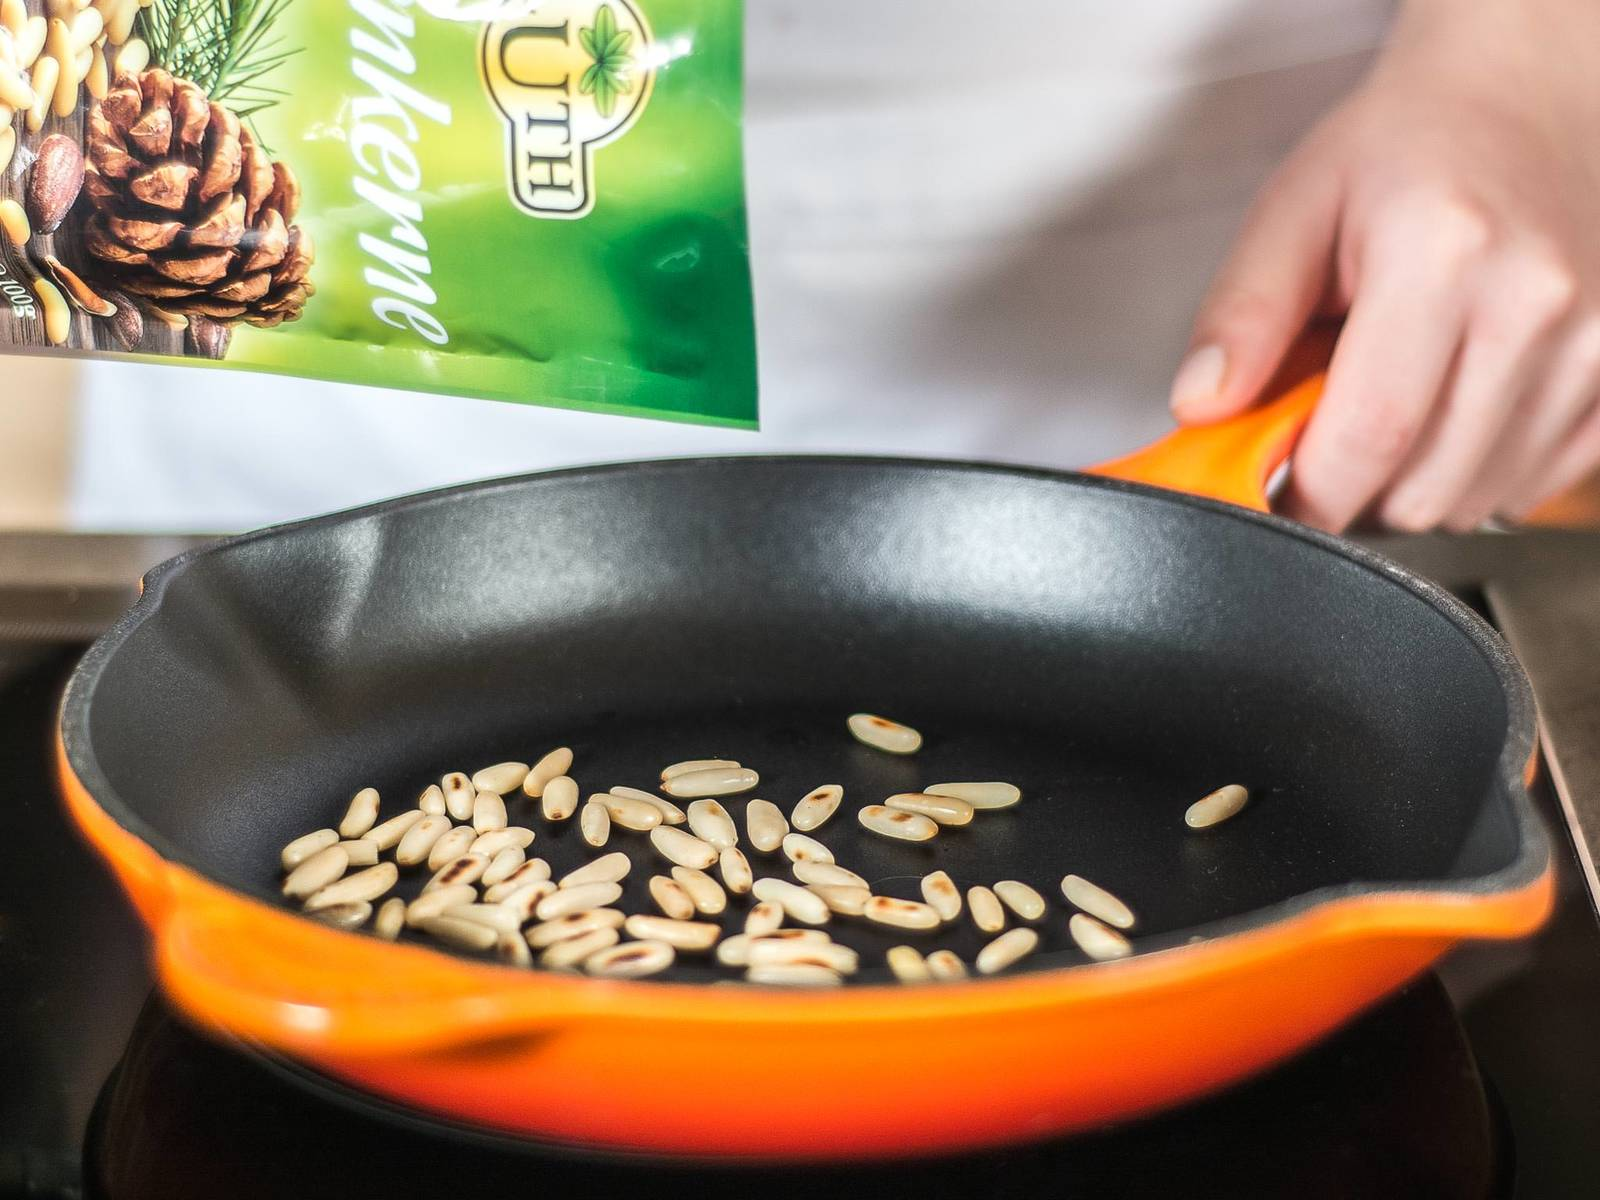 Roast pine nuts in a pan until golden. In the meantime, wash and dry the mixed curly leaf lettuce. For best results, use a salad spinner.